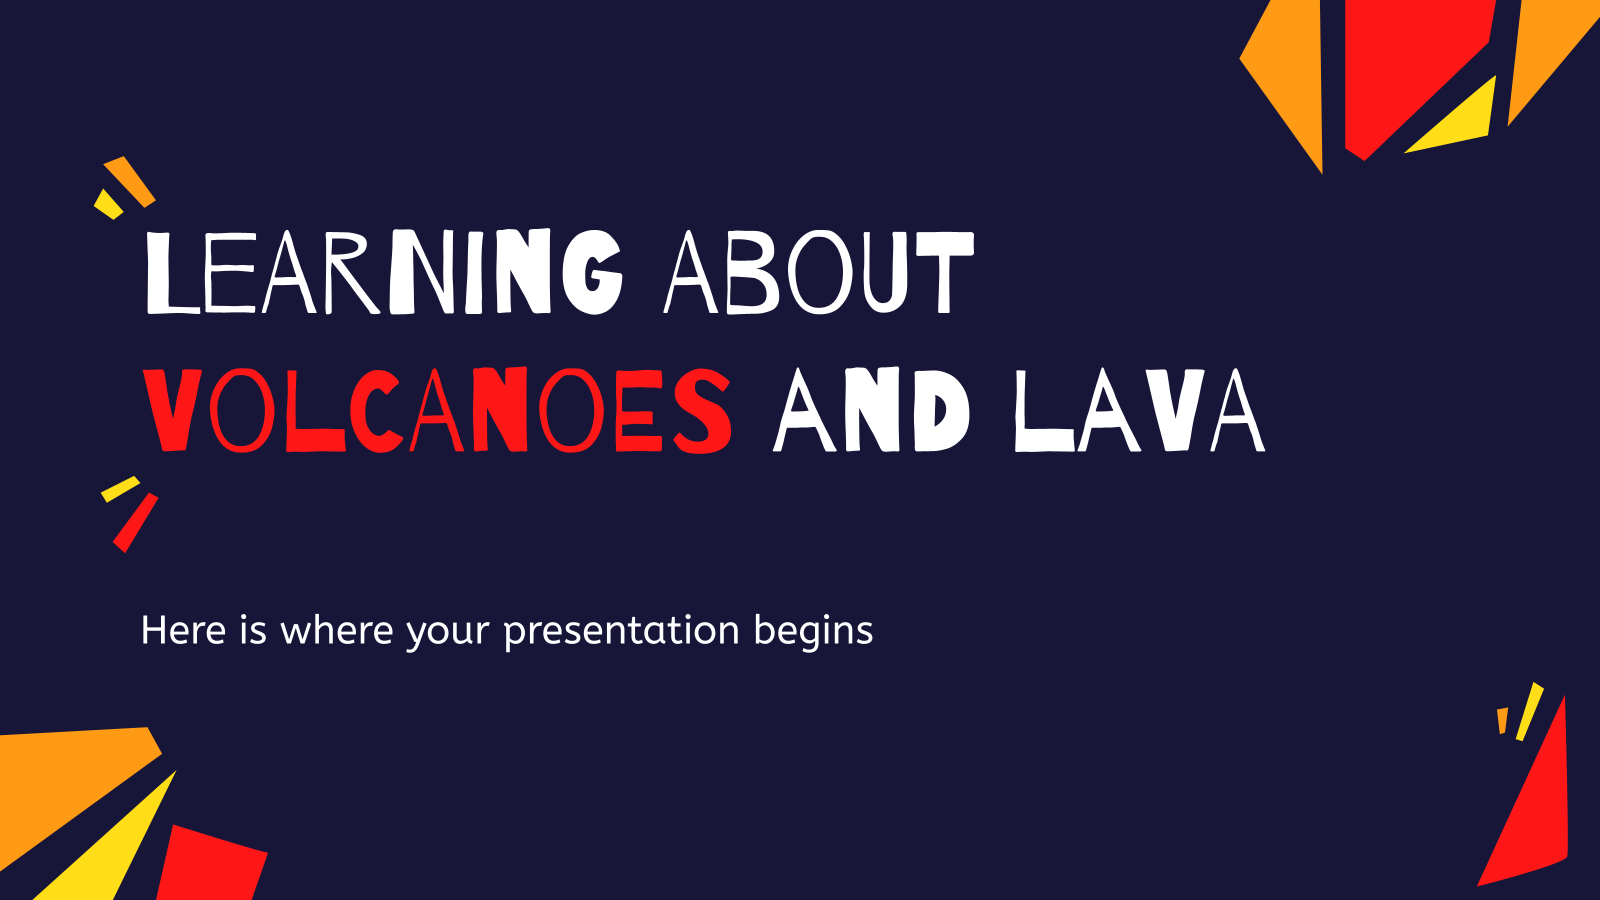 Learning About Volcanoes and Lava presentation template